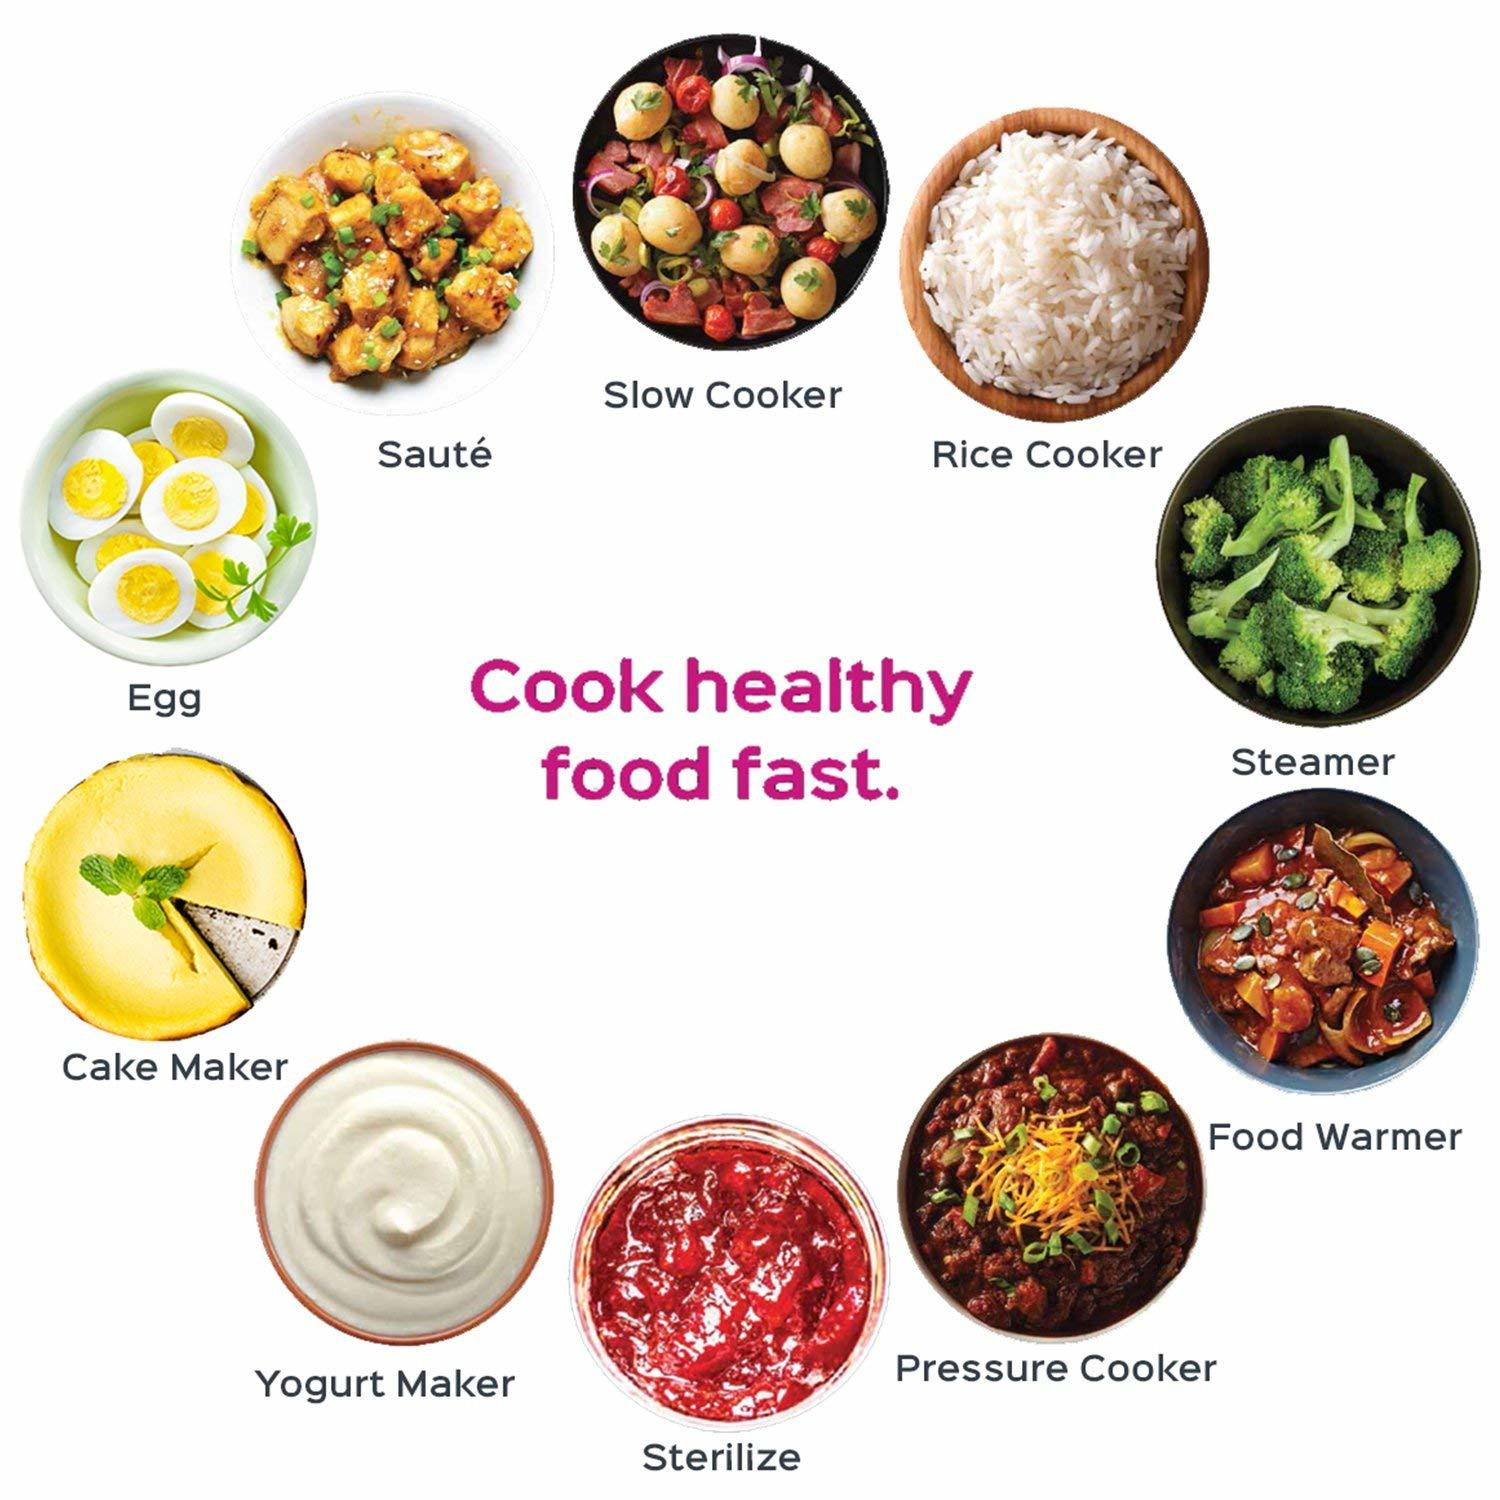 cook healthy food fast